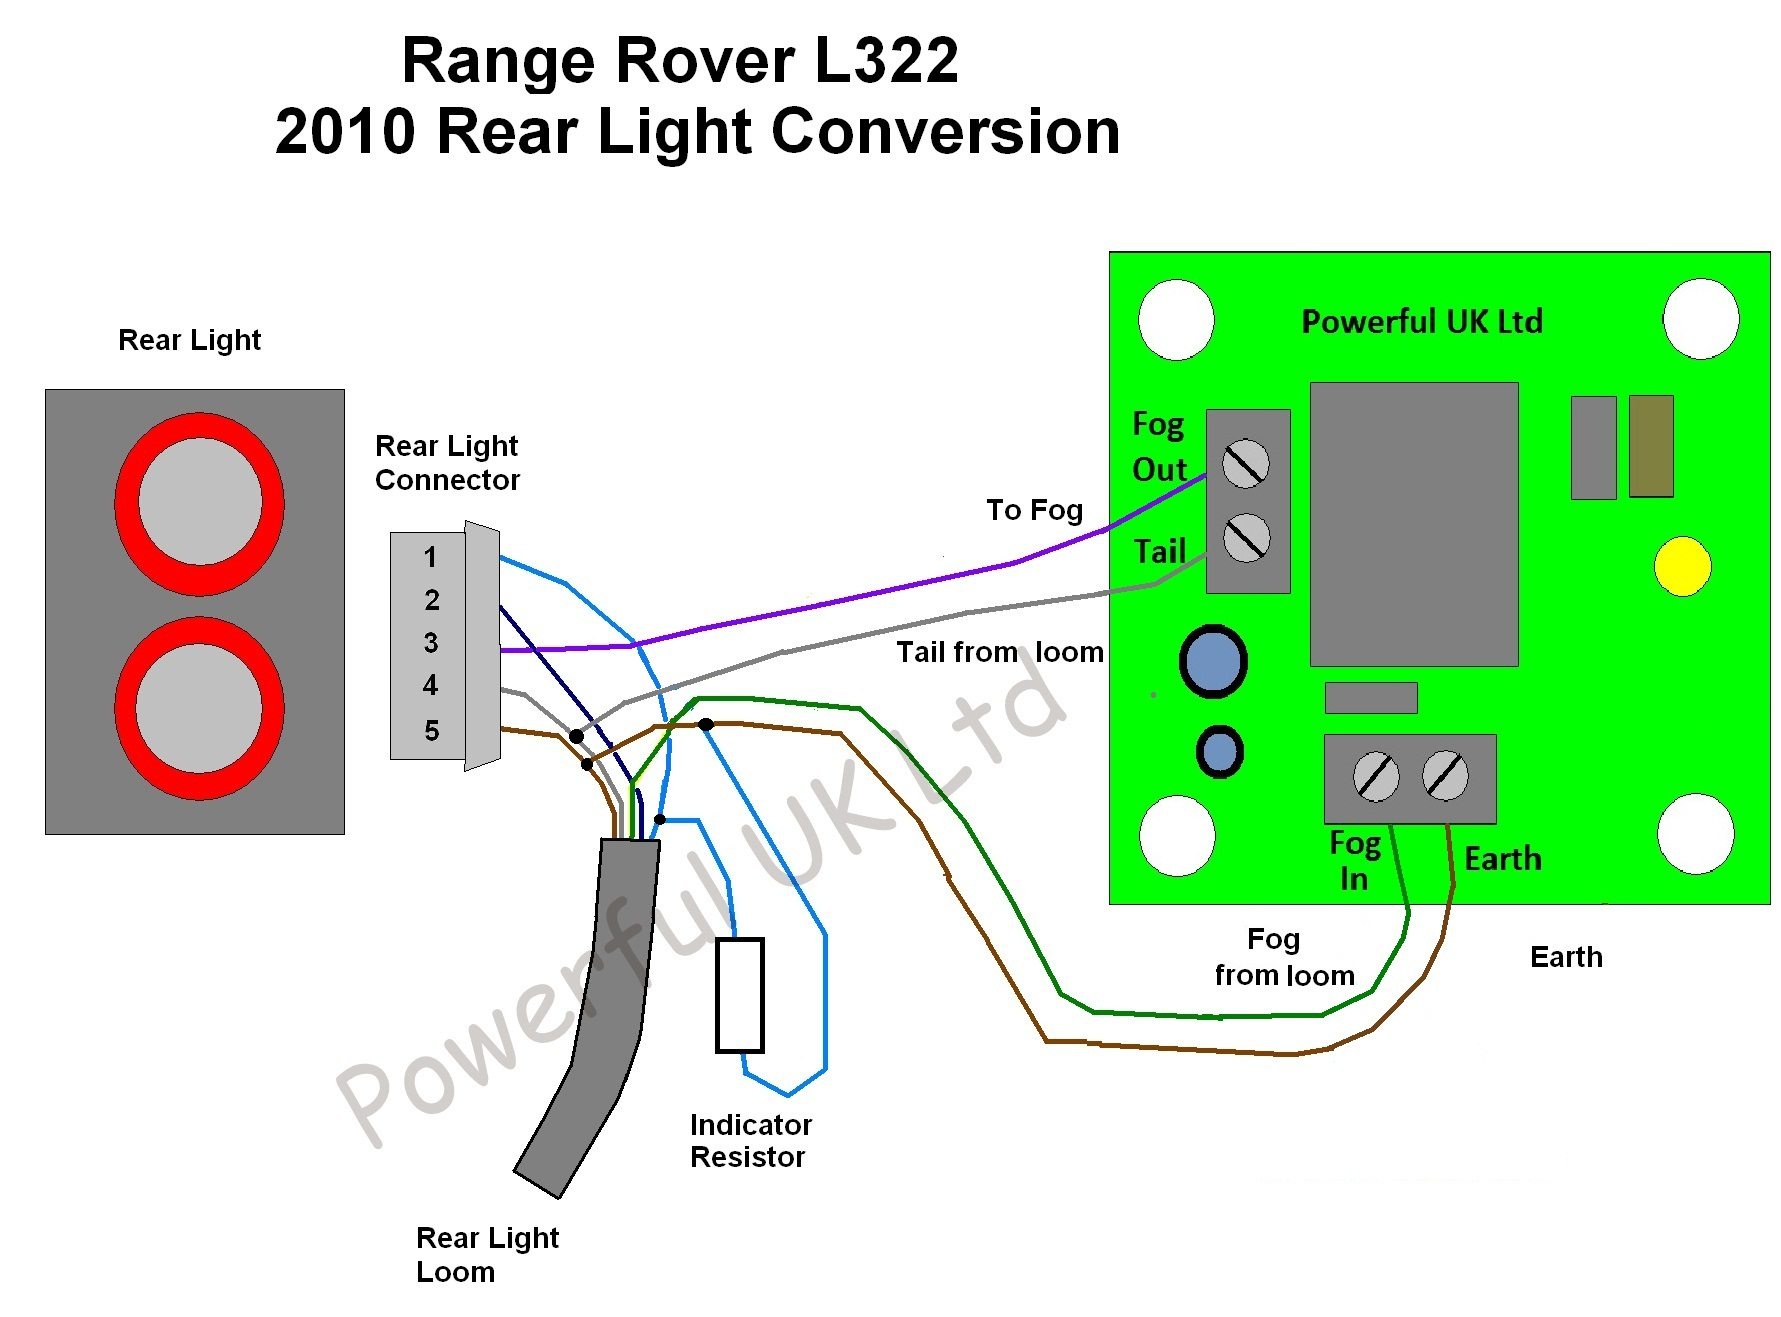 hight resolution of 2010 led fog light flash fix for range rover l322 02 04 ebay land rover discovery engine diagram land rover discovery relay diagram